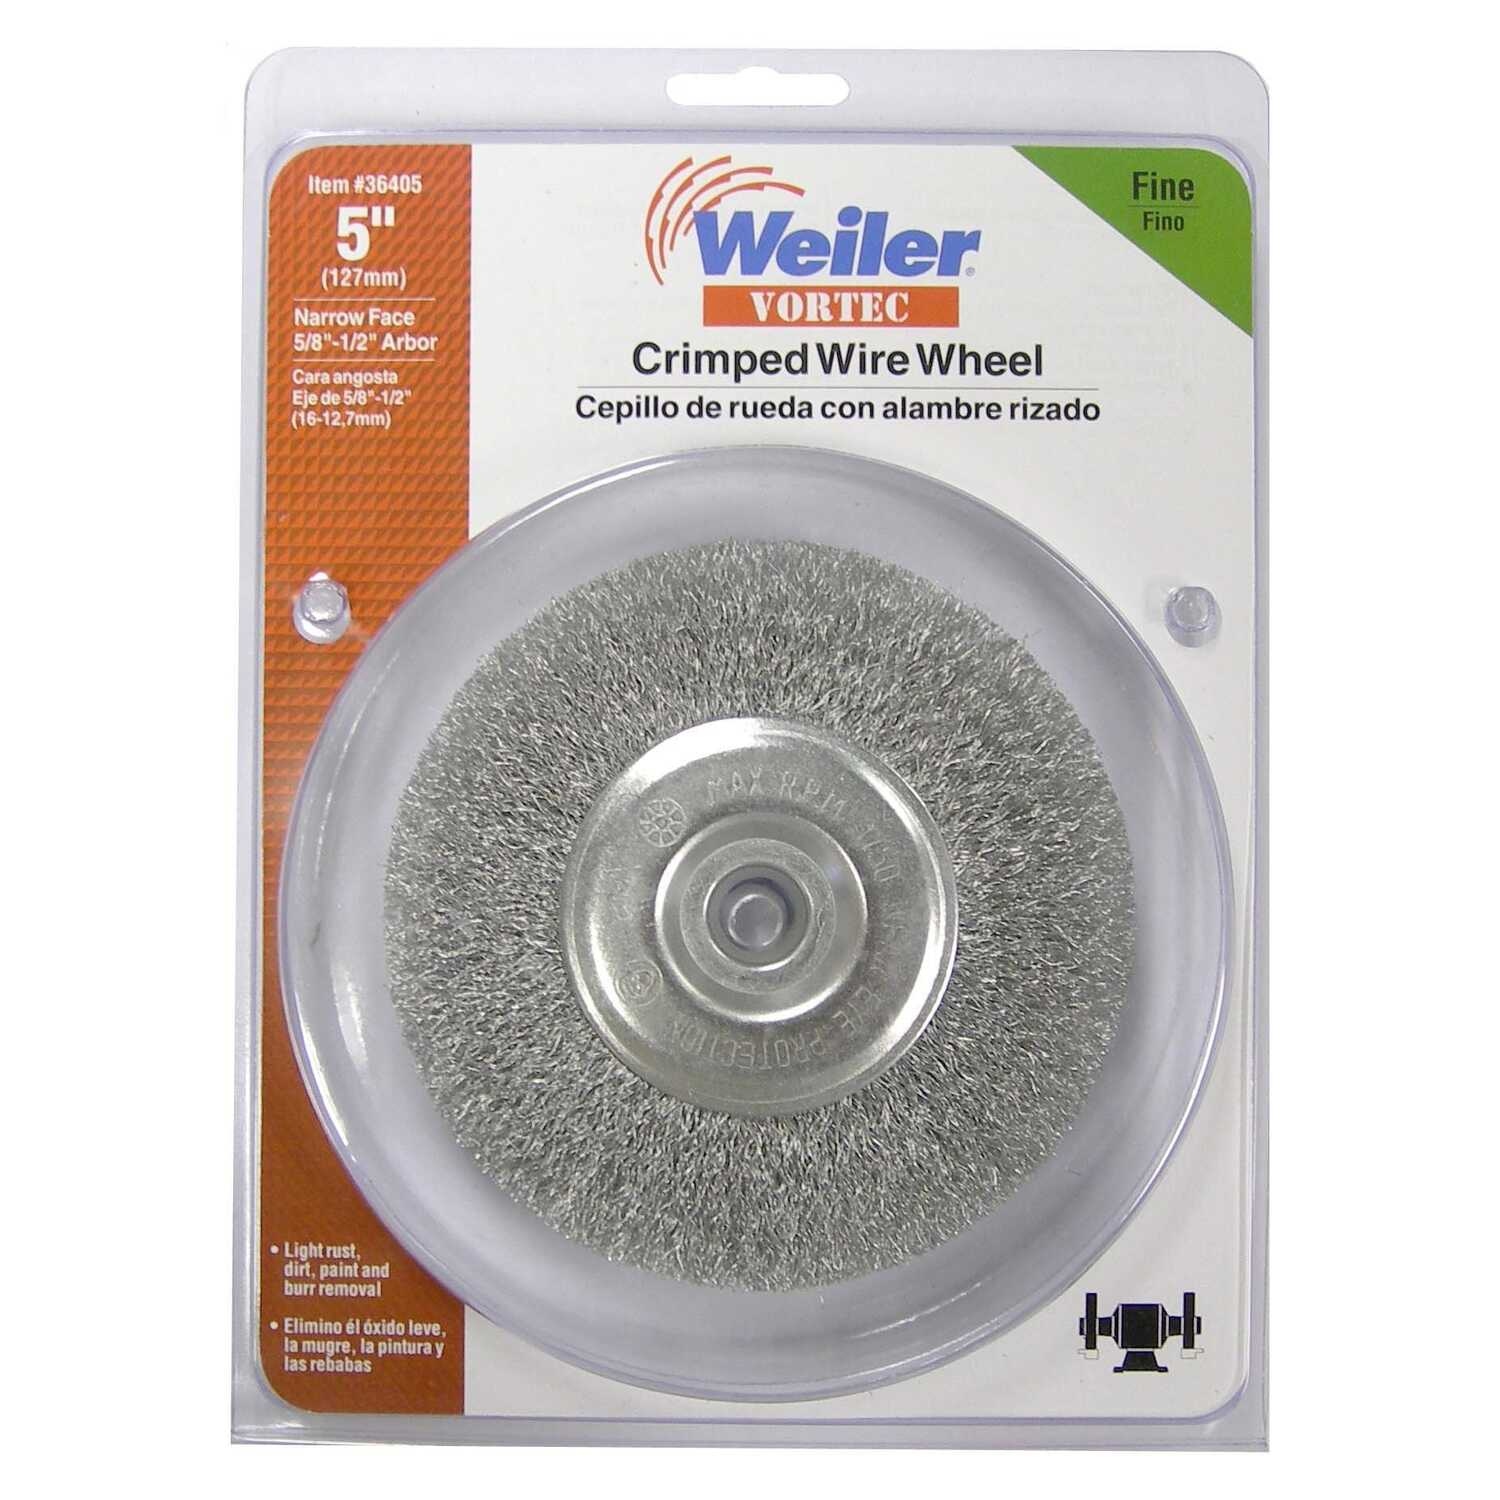 Weiler  Vortec  5 in. Fine  Crimped  Wire Wheel  Carbon Steel  3750 rpm 1 pc.